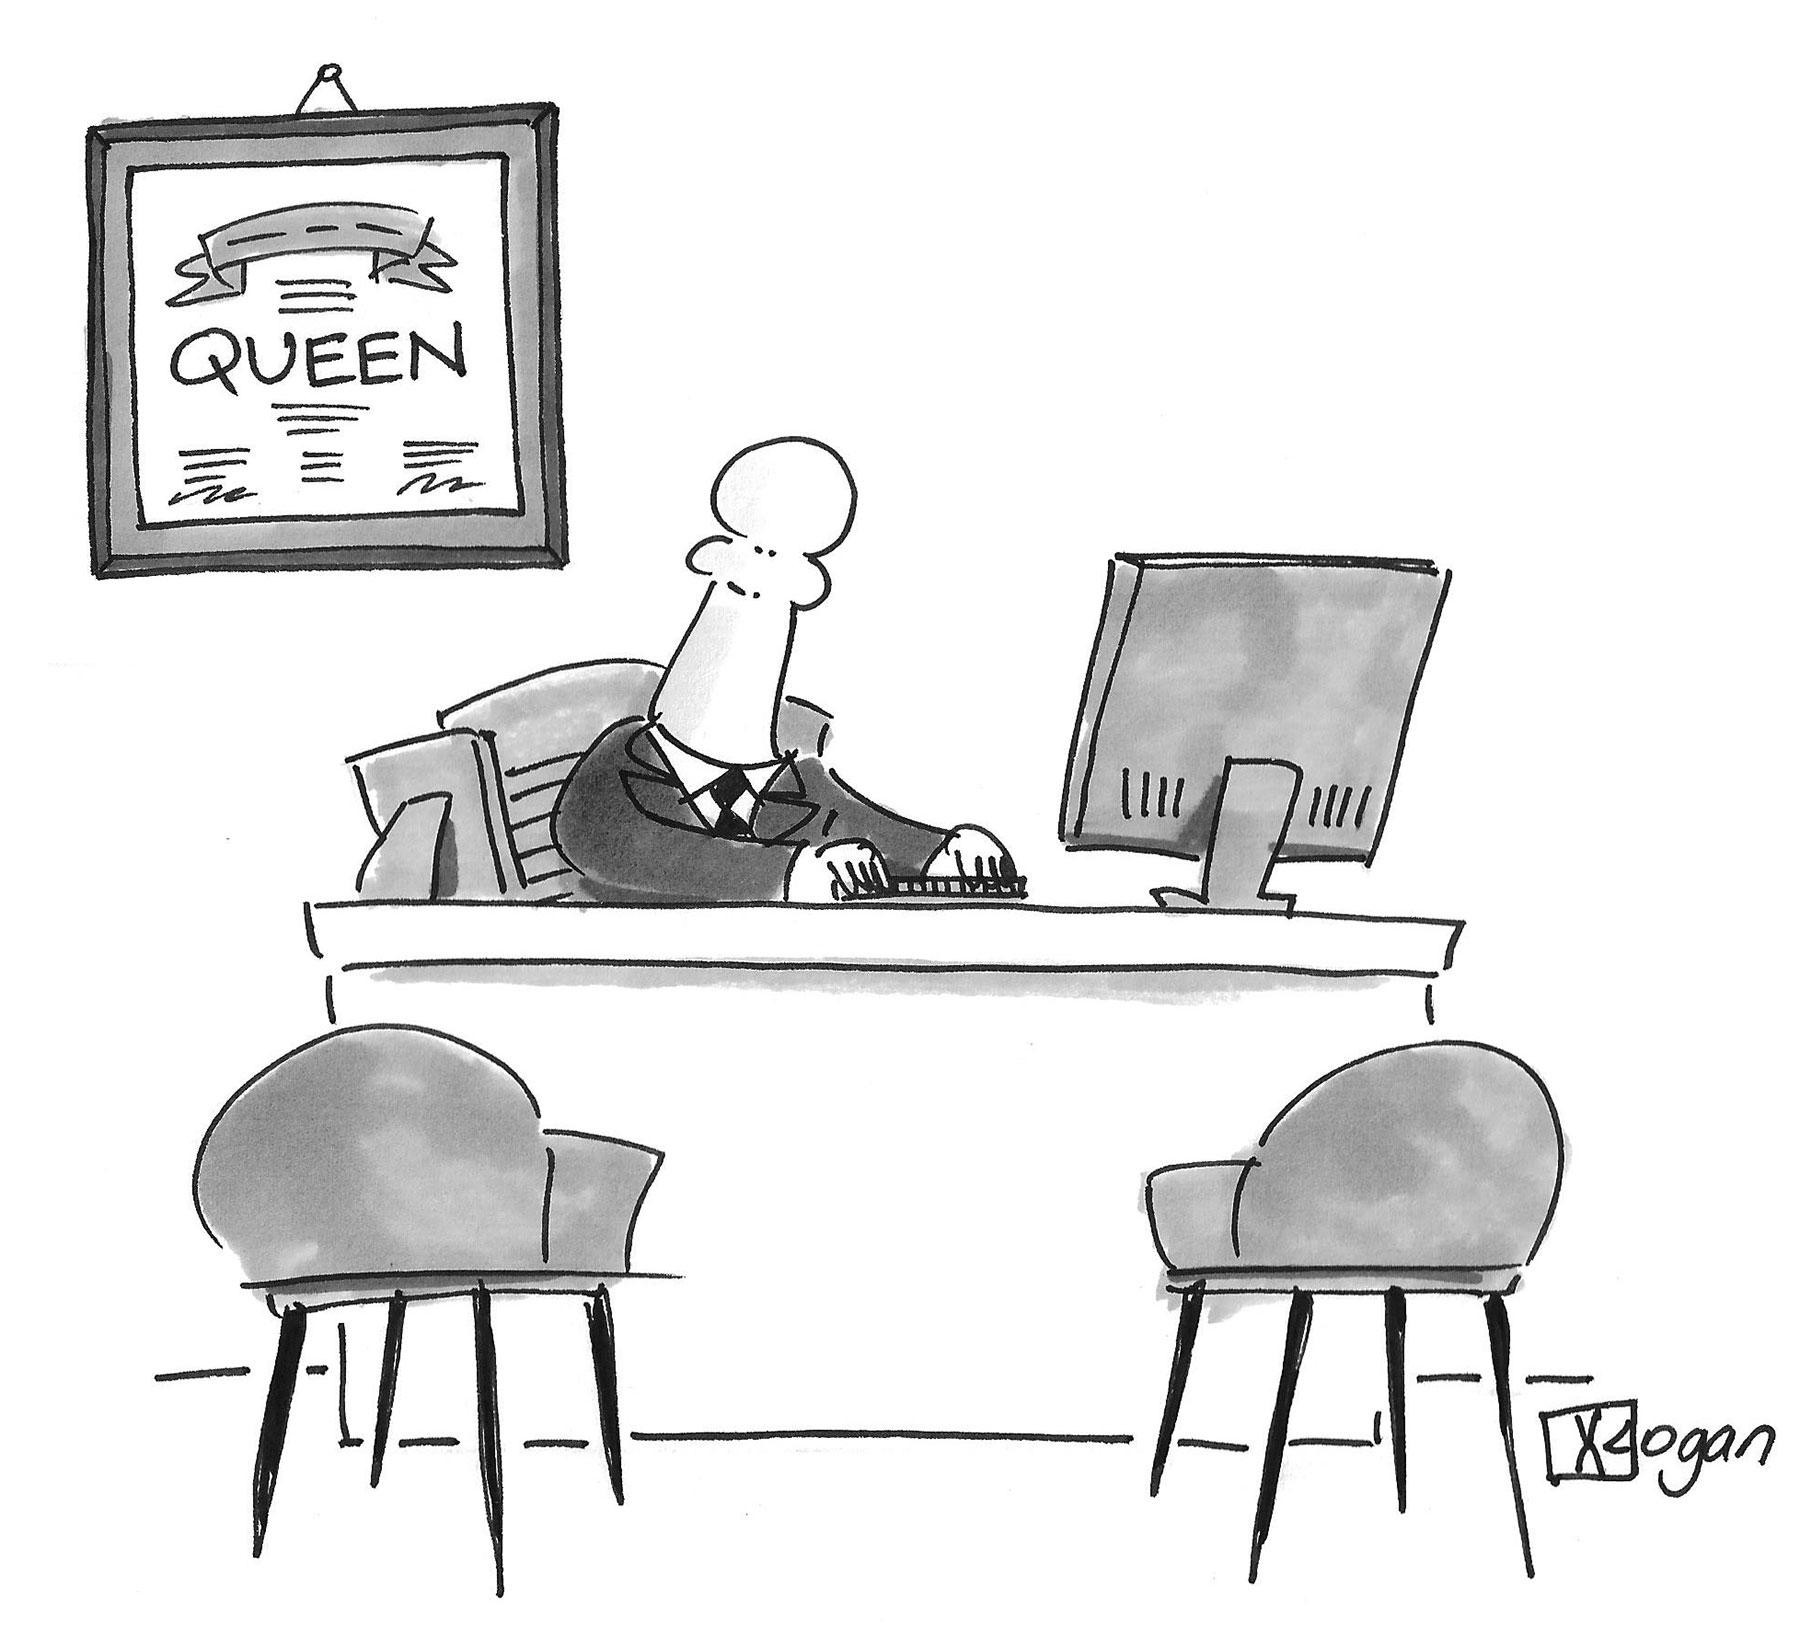 (An office pawn has a 'Queen' certificate on its wall.)